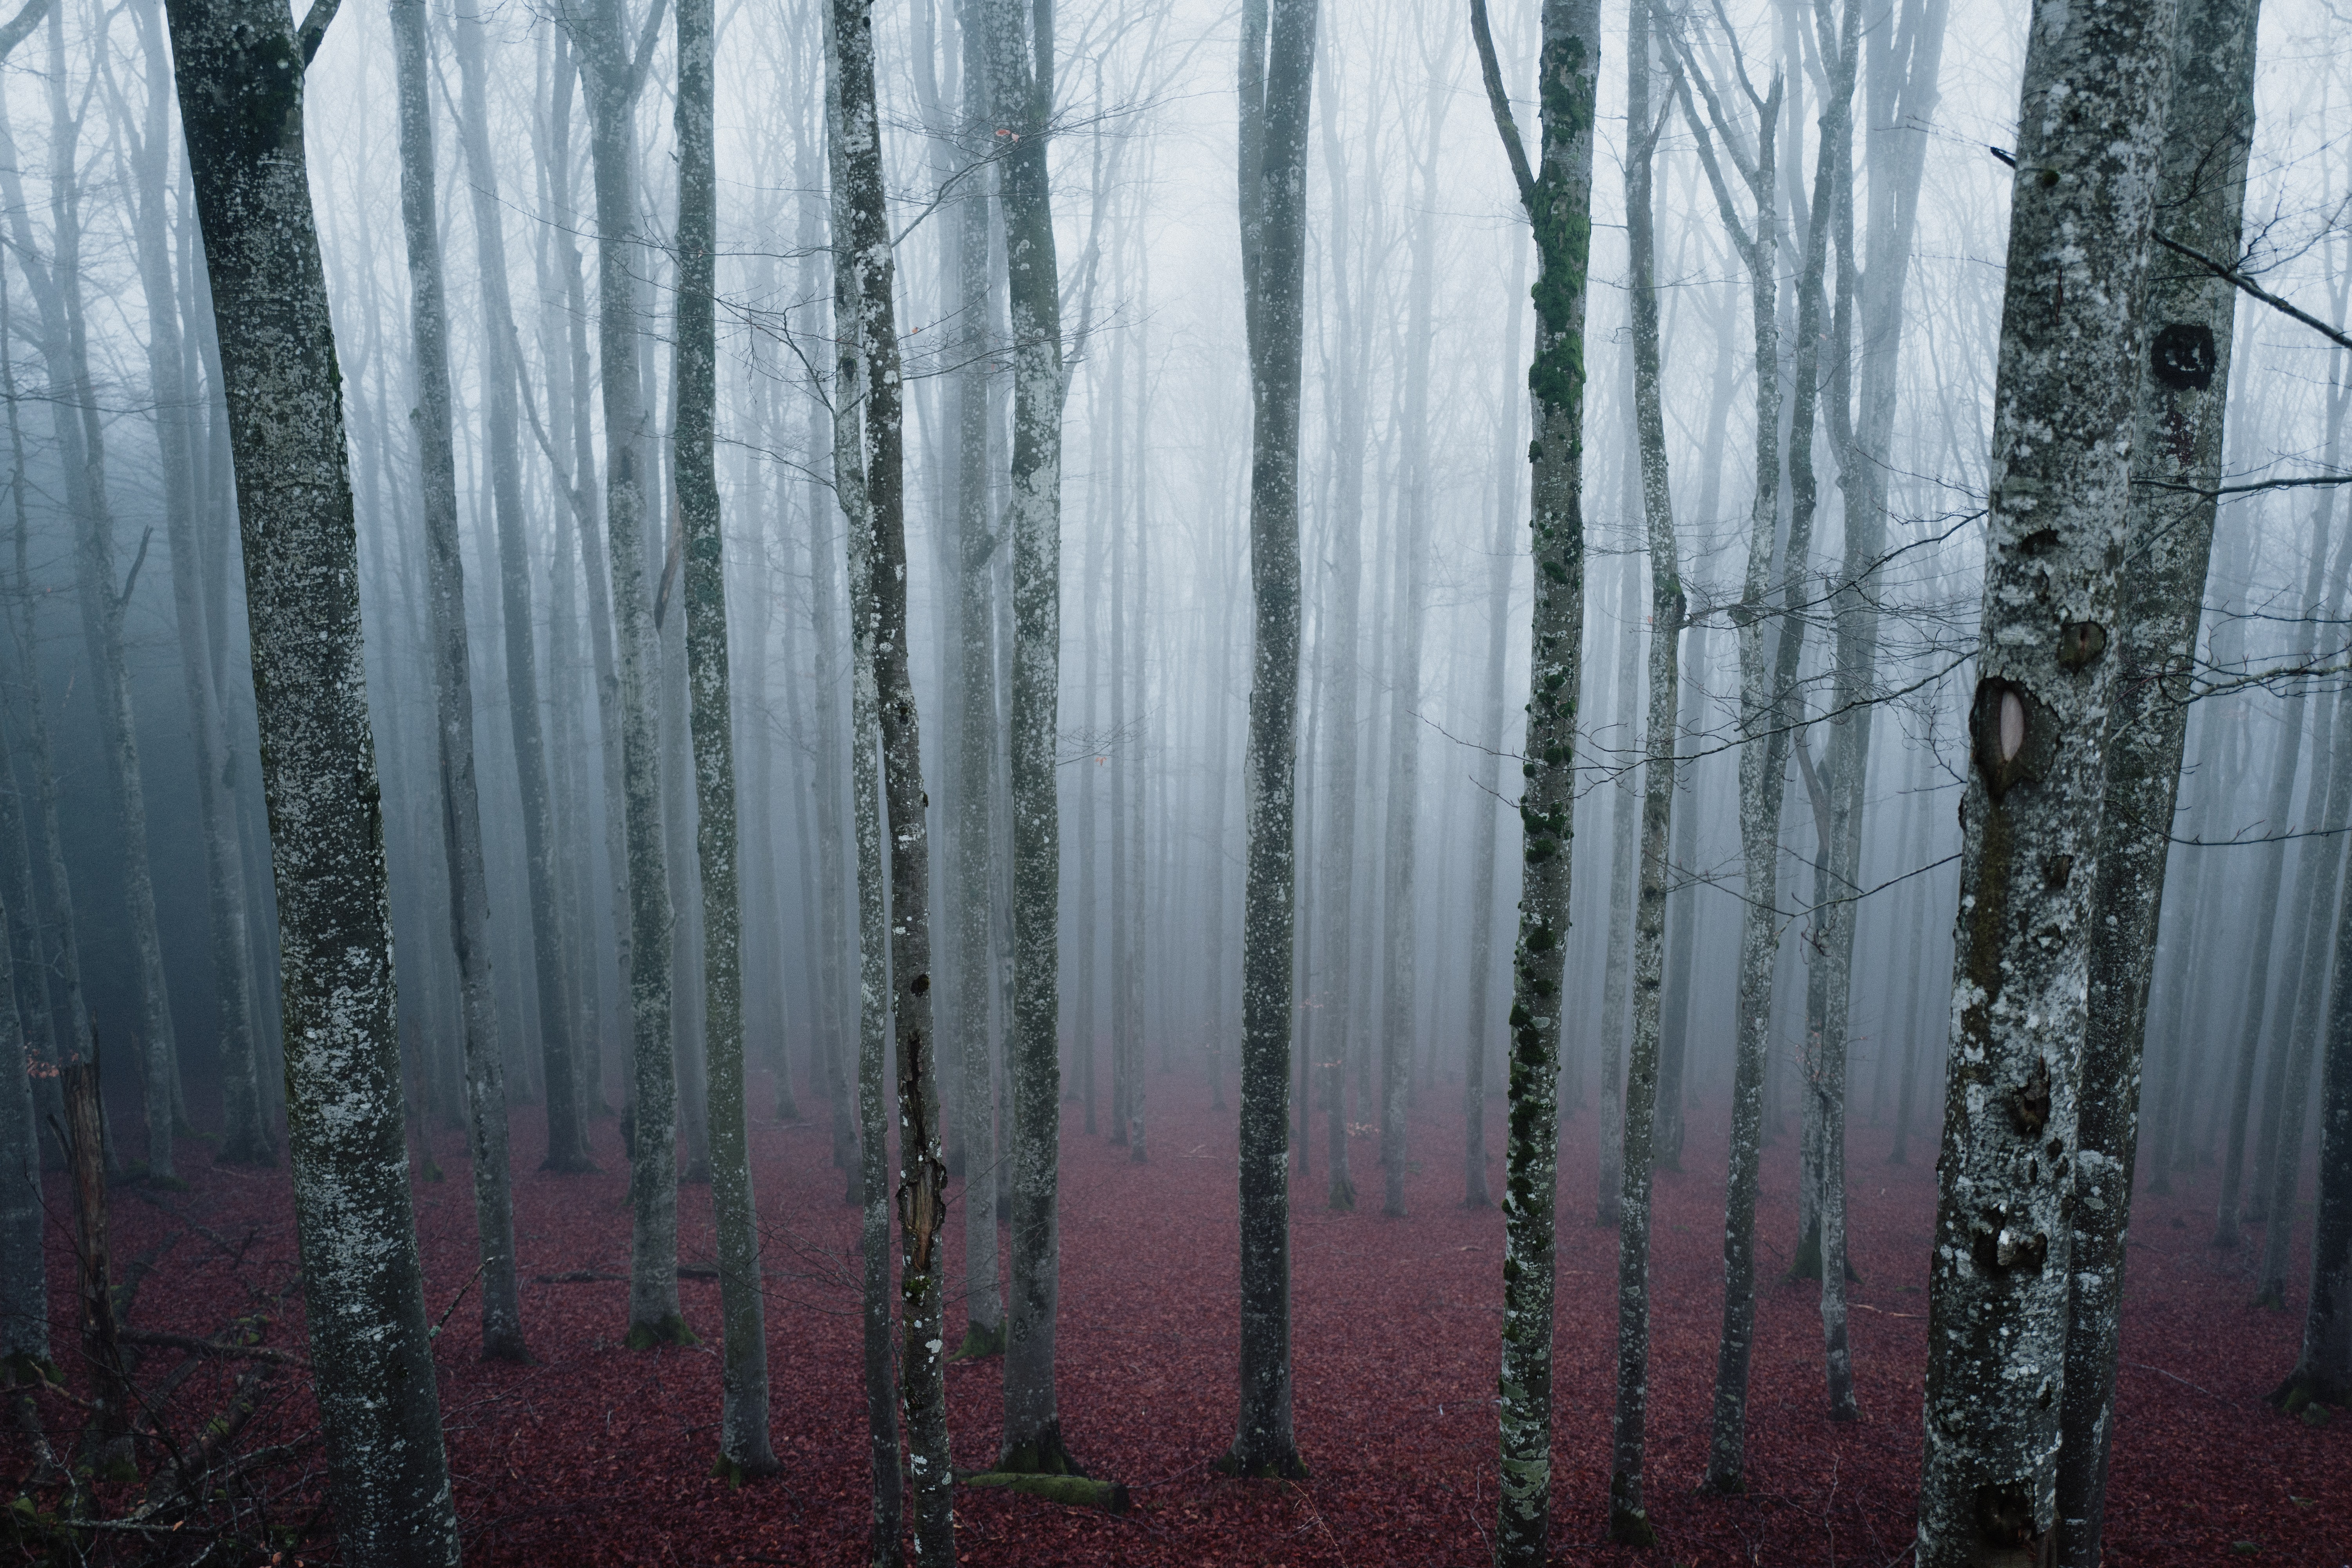 leafless trees with fogs during daytime